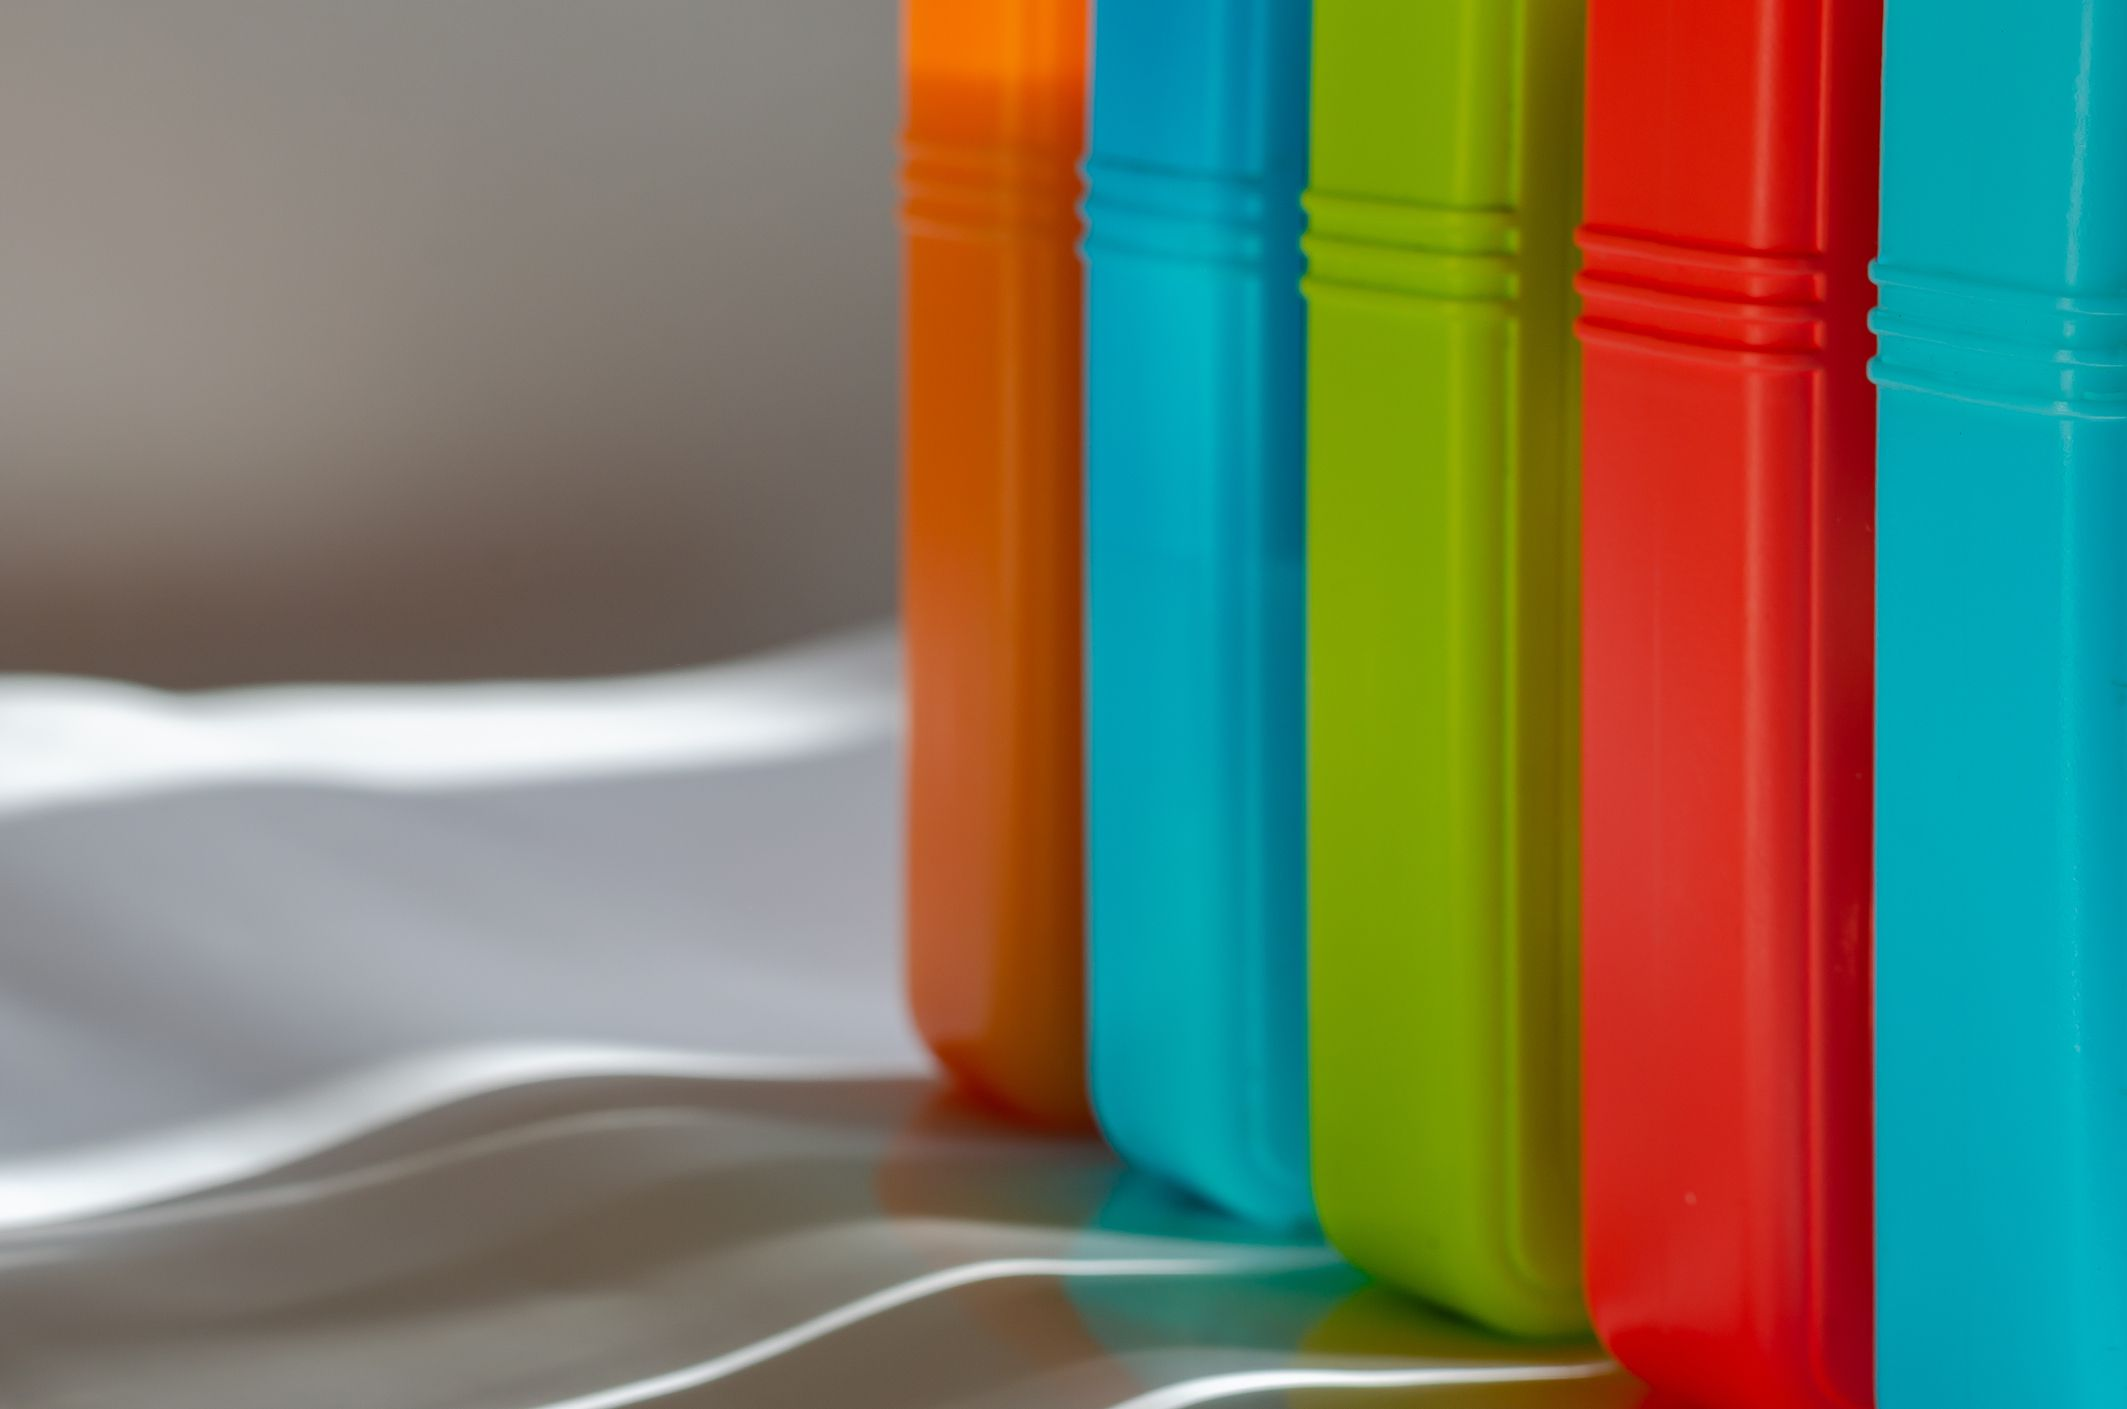 Multi-colored containers stored vertically.